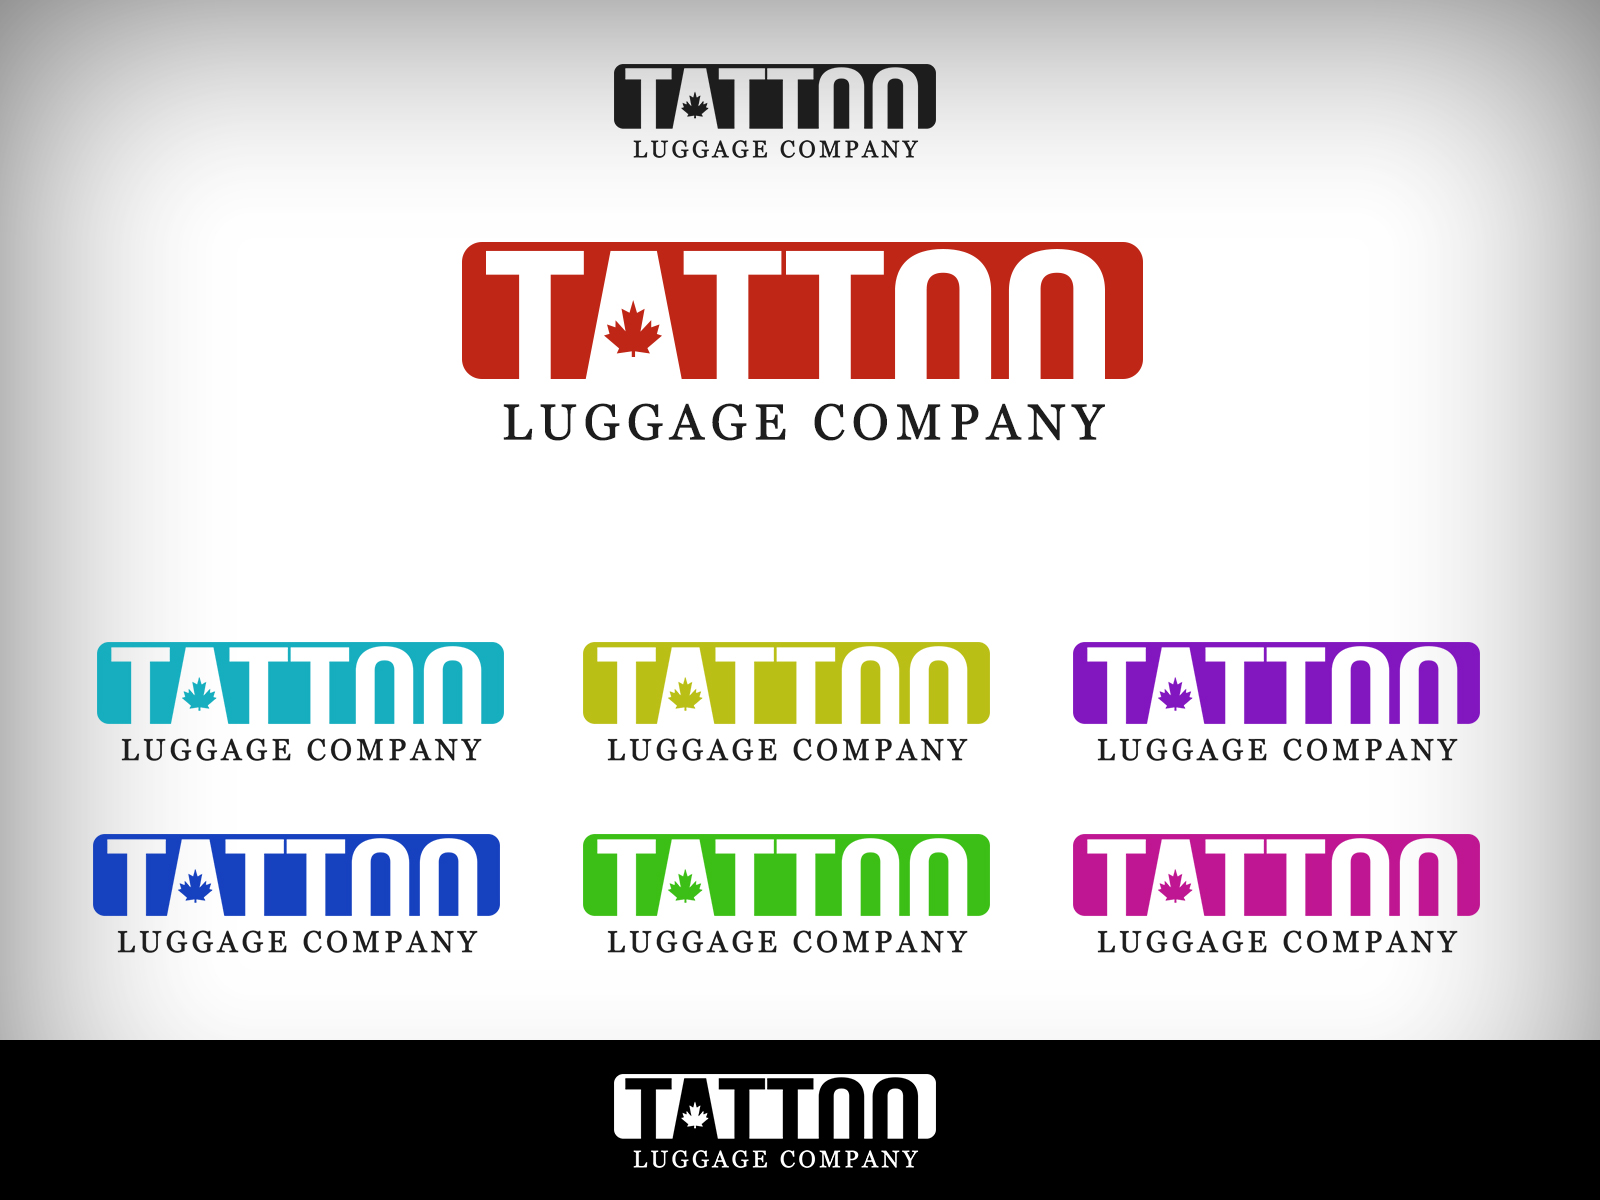 Logo Design by Virgilio Pineda III - Entry No. 132 in the Logo Design Contest Artistic Logo Design for Tattoo Luggage Company.